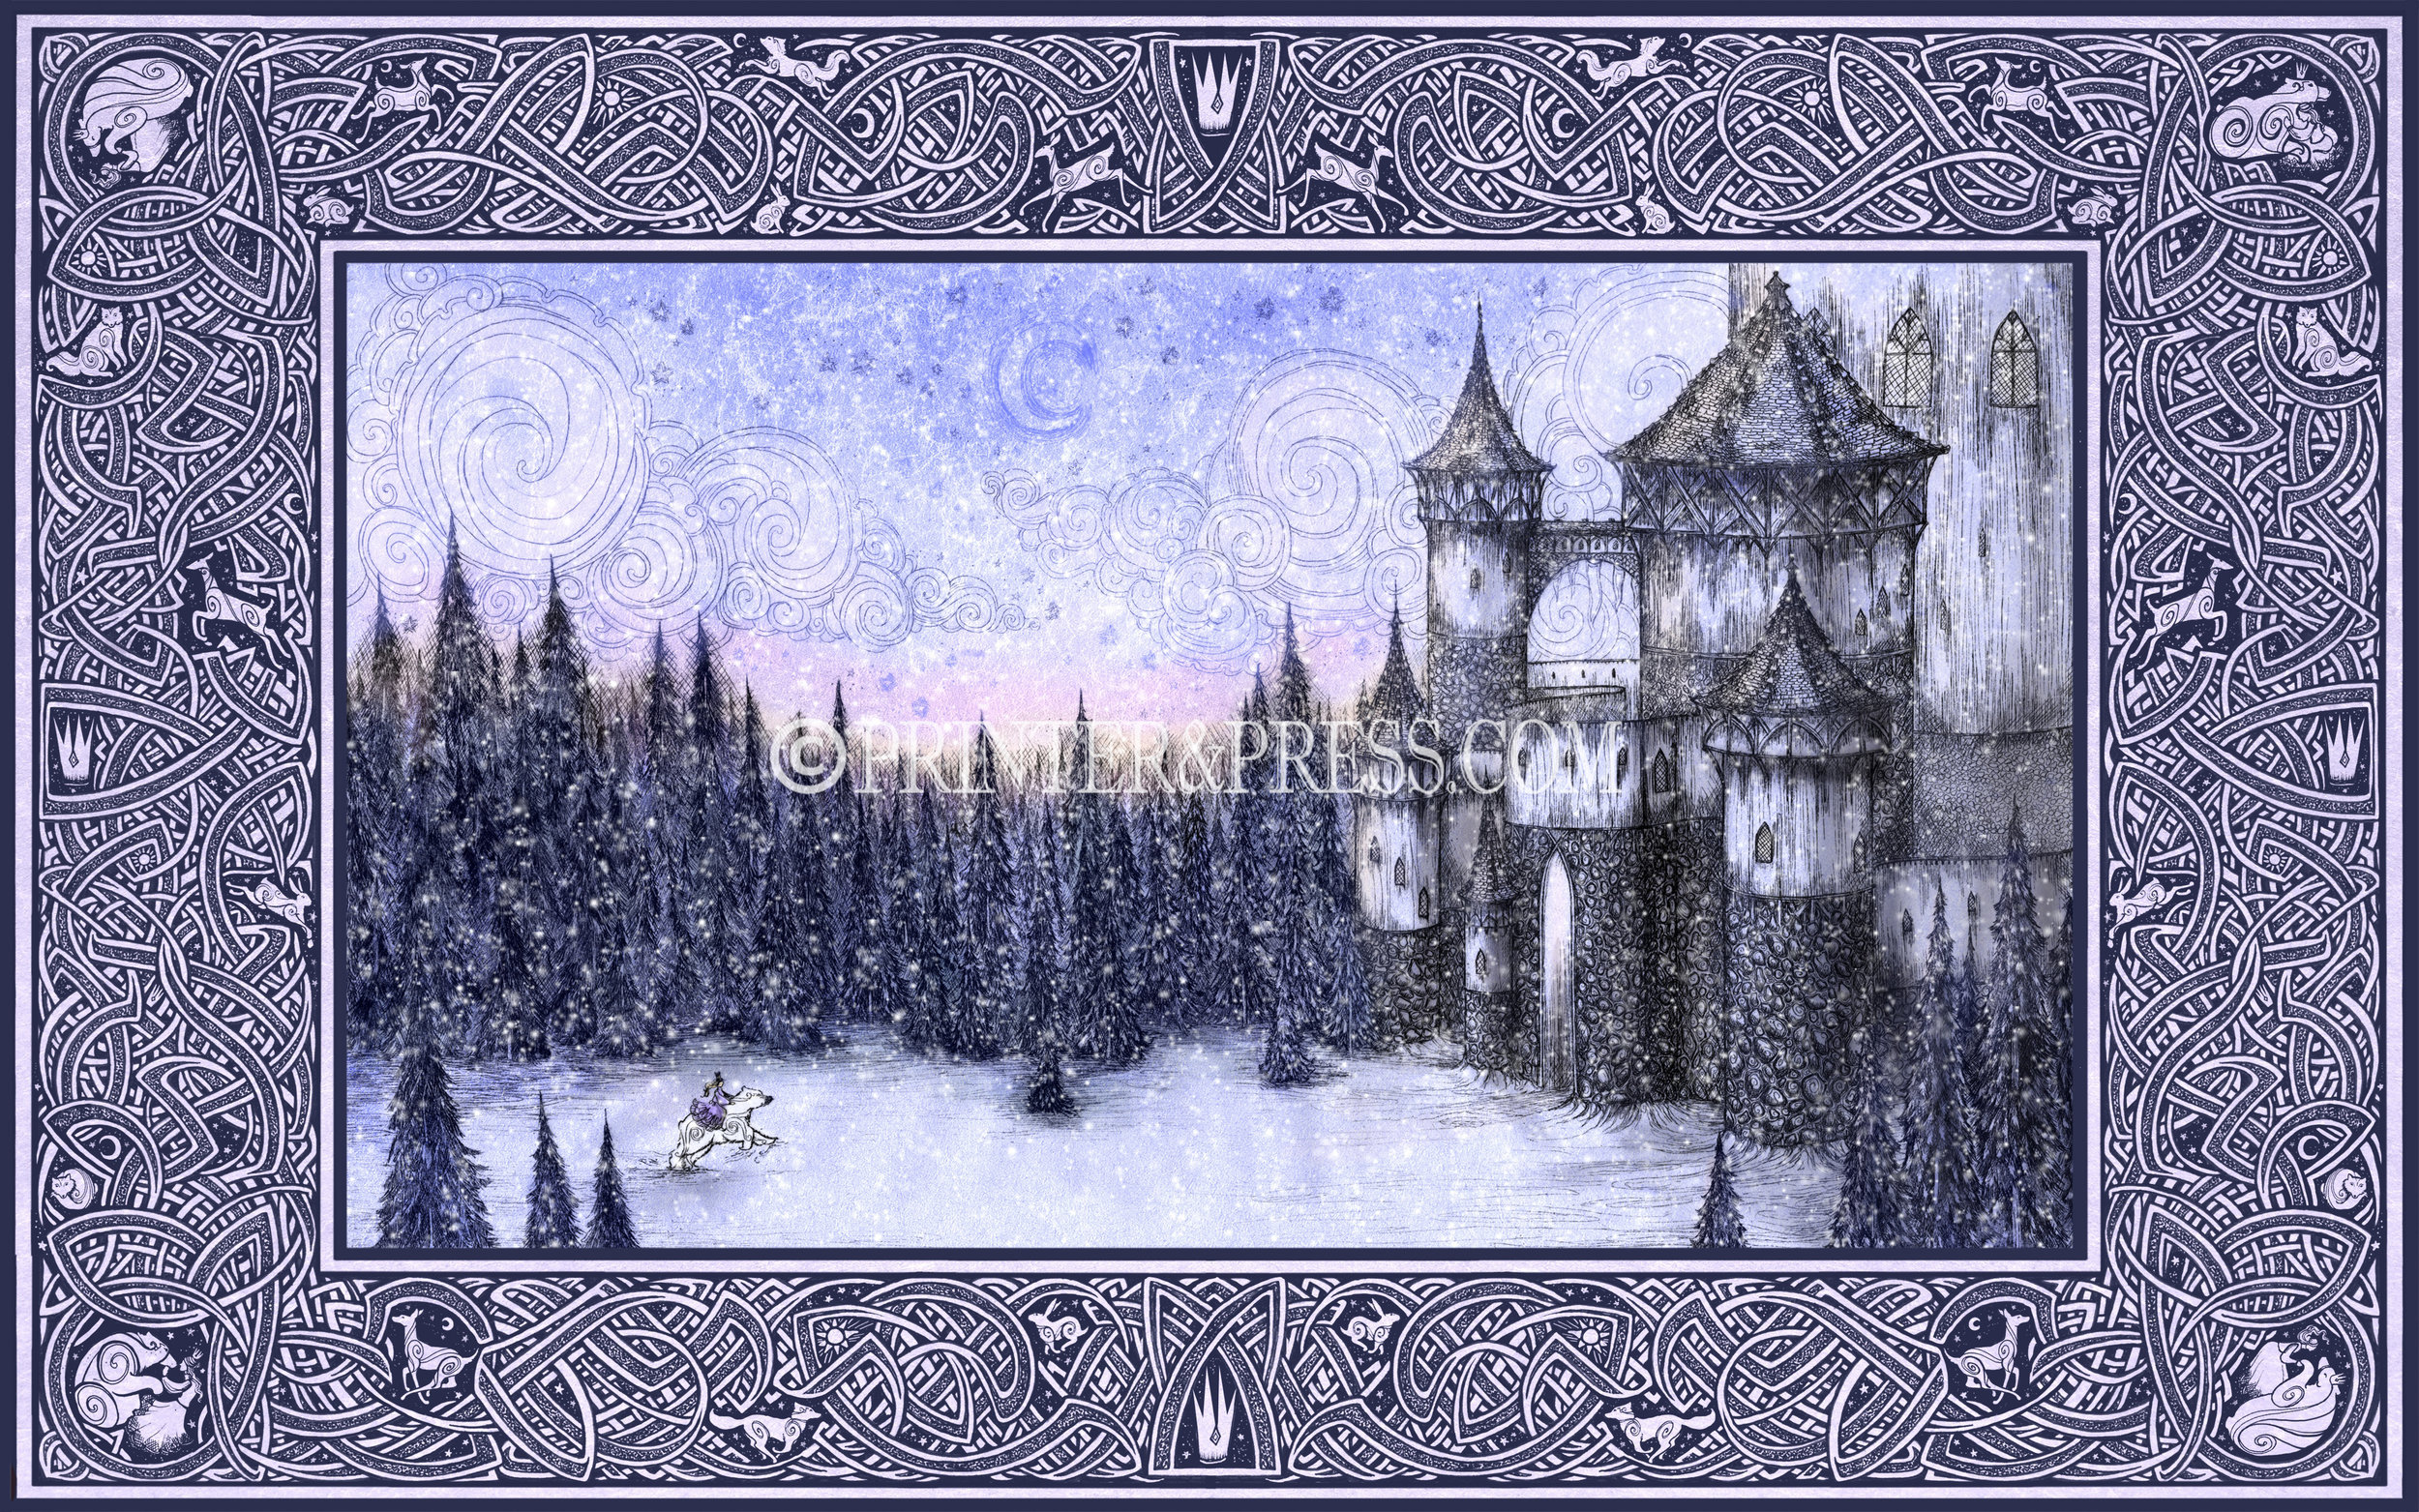 This print was made first from an etching, based on the story of the Princess and the White Bear King, with the Princess riding a great white polar bear through a dark forest towards the castle. This piece shows the castle they are heading towards and the great expanse of the forest at sunrise!